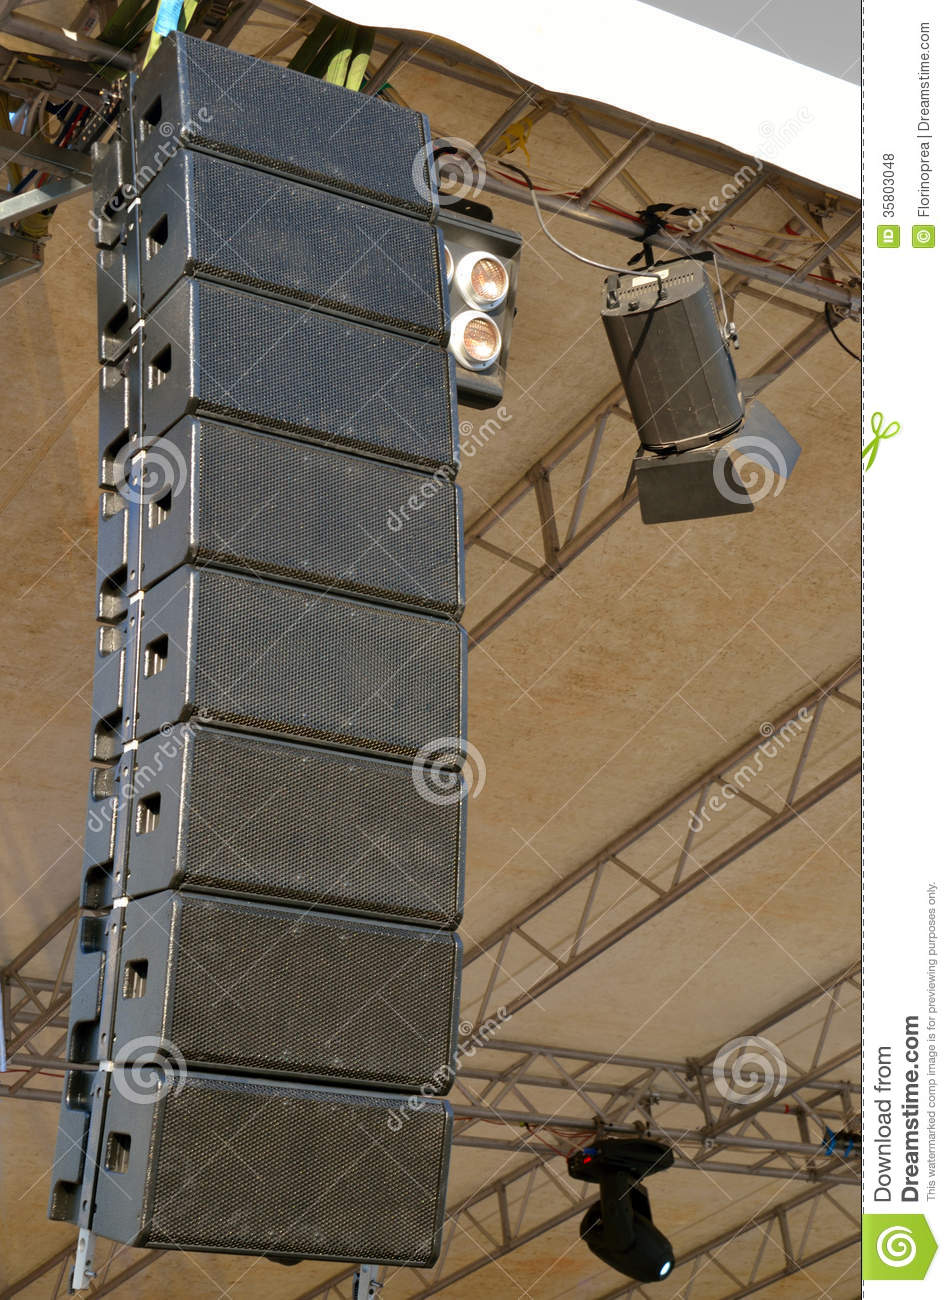 Speakers At Outdoors Concert Royalty Free Stock Photos